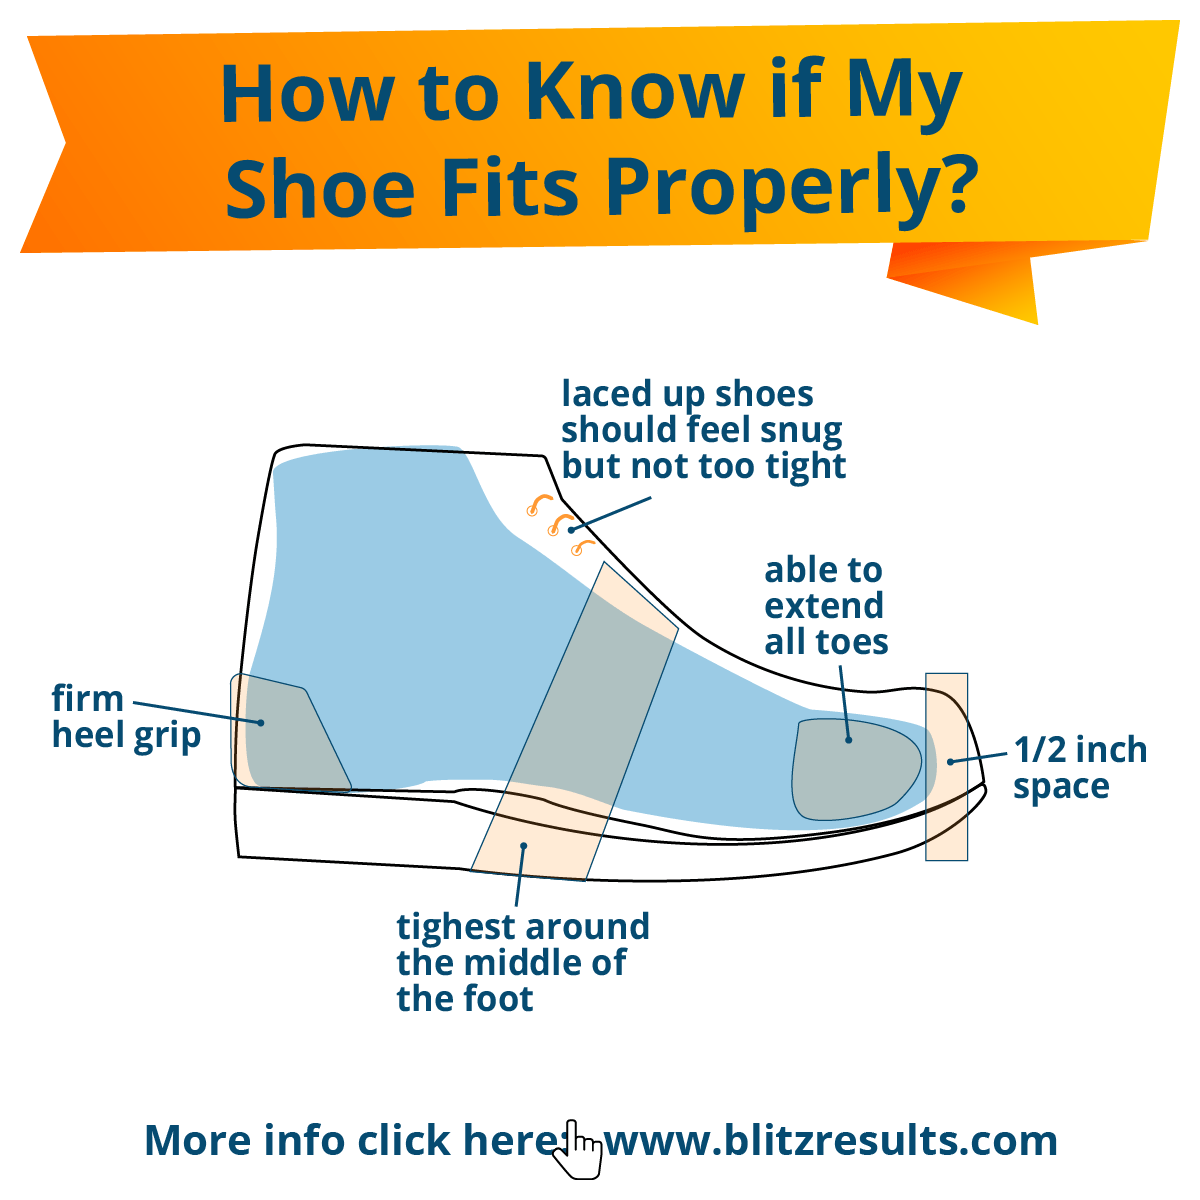 how to know if shoe fits properly